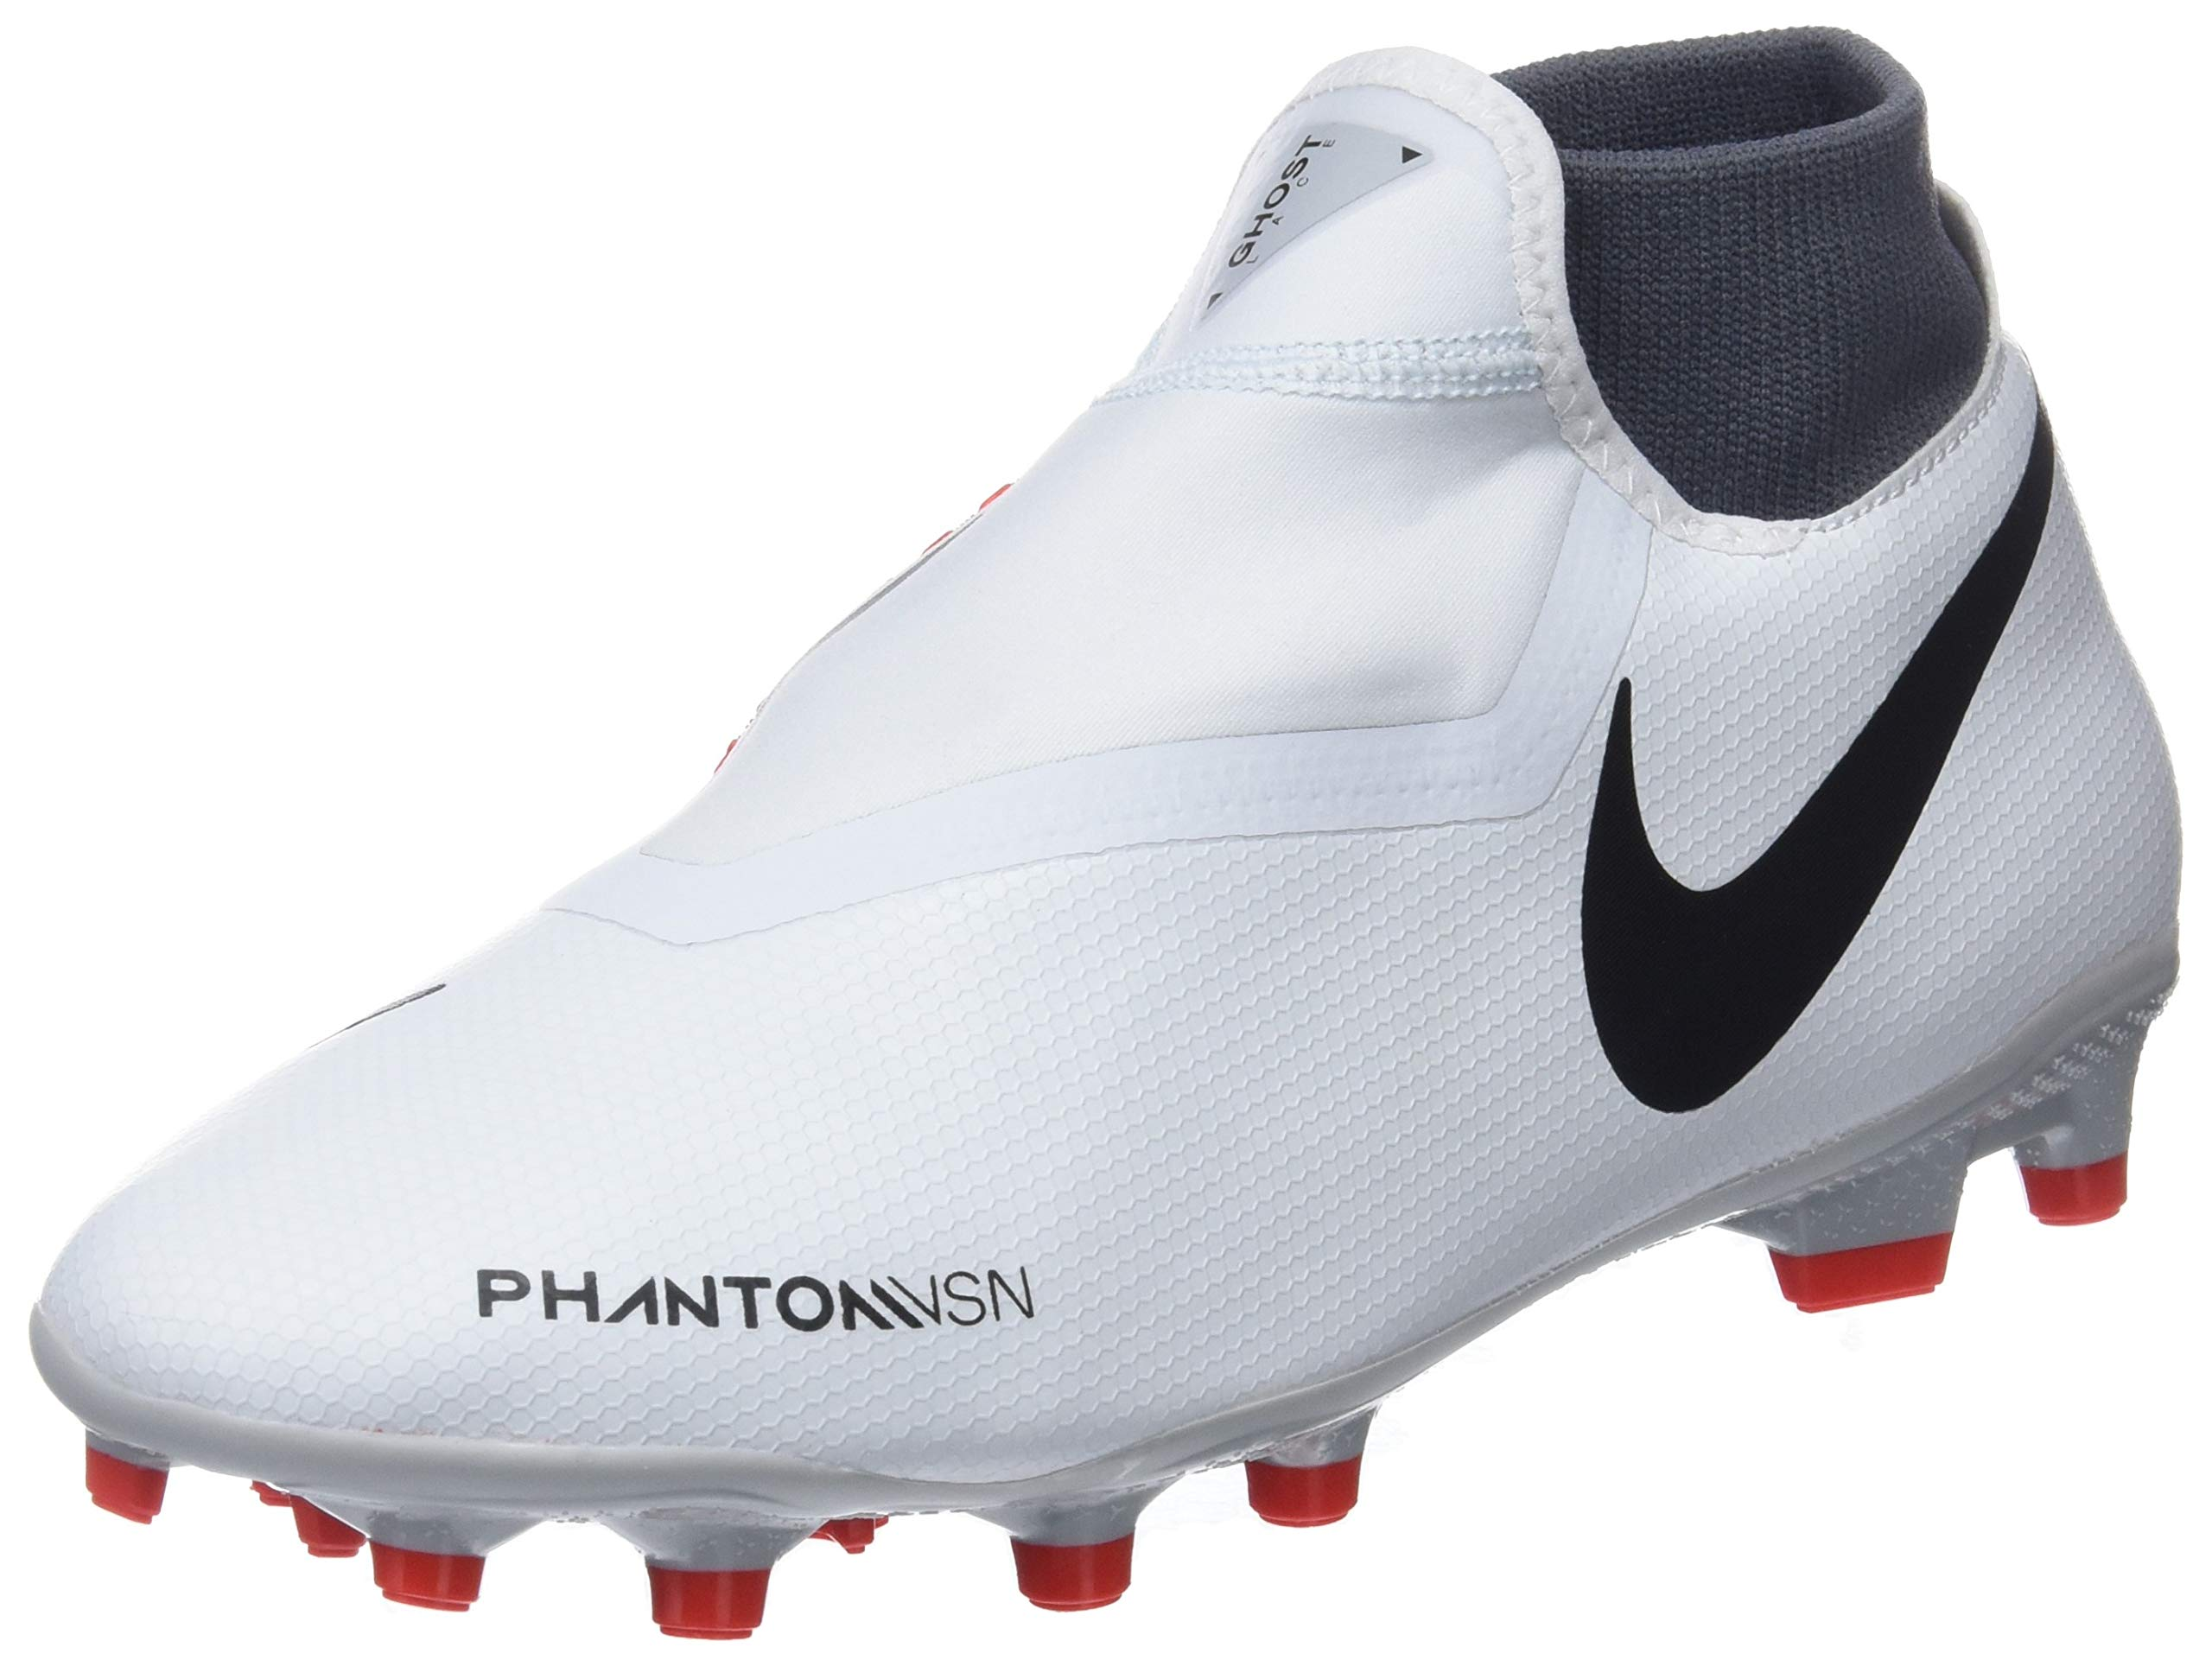 NIKE Hypervenom Phantom Vision Academy DF MG Soccer Cleat (Pure Platinum) (Men's 12/Women's 13.5)